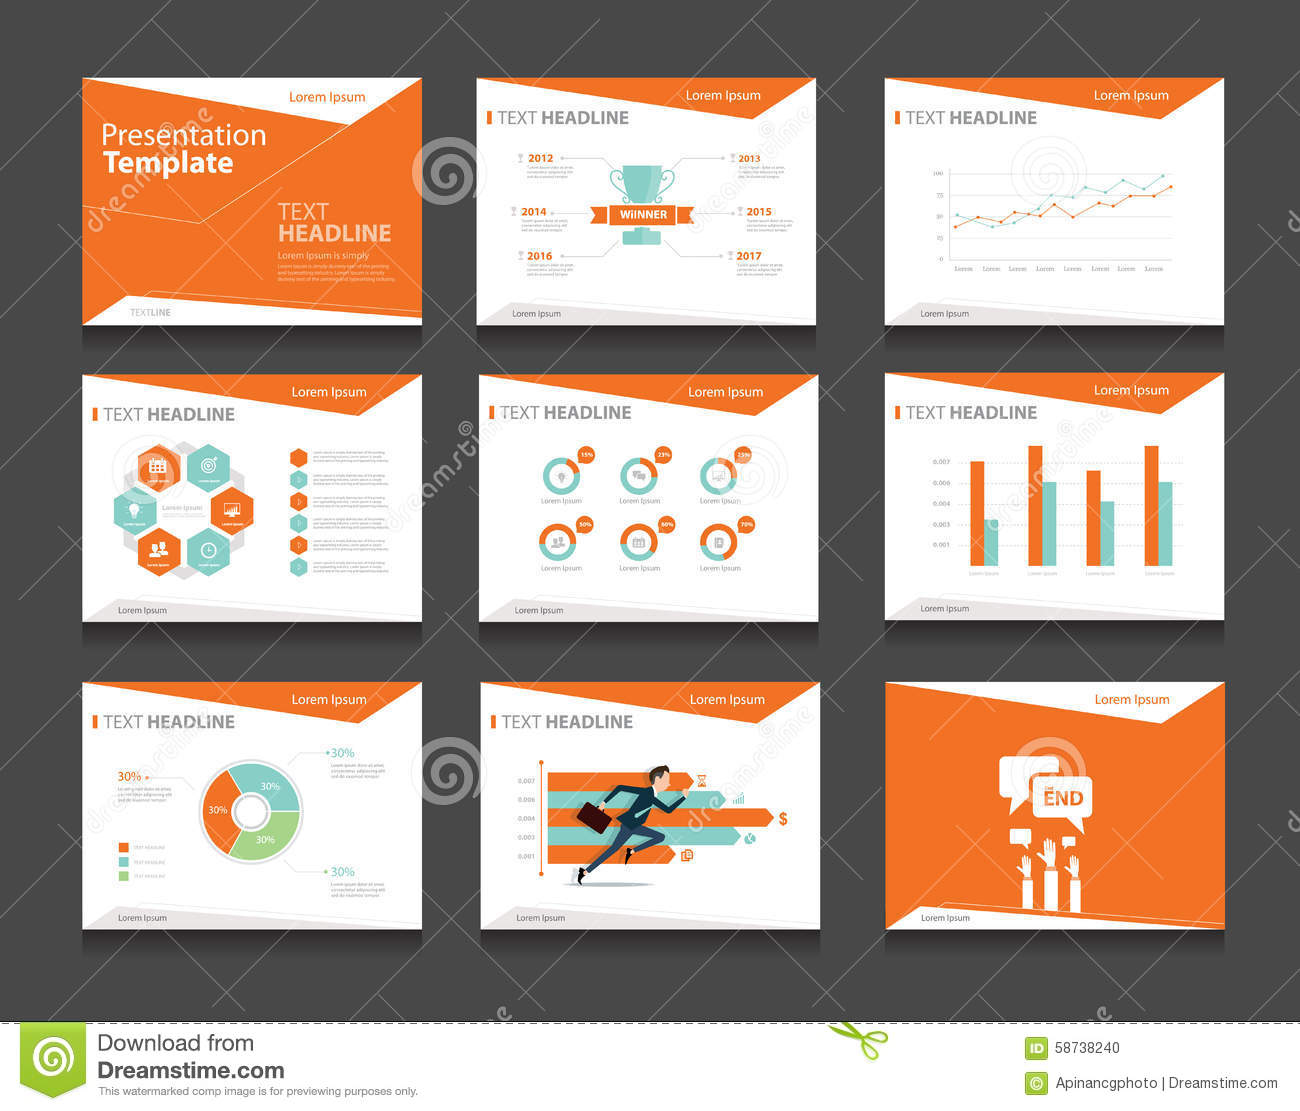 Design of powerpoint presentation yeniscale design of powerpoint presentation toneelgroepblik Image collections